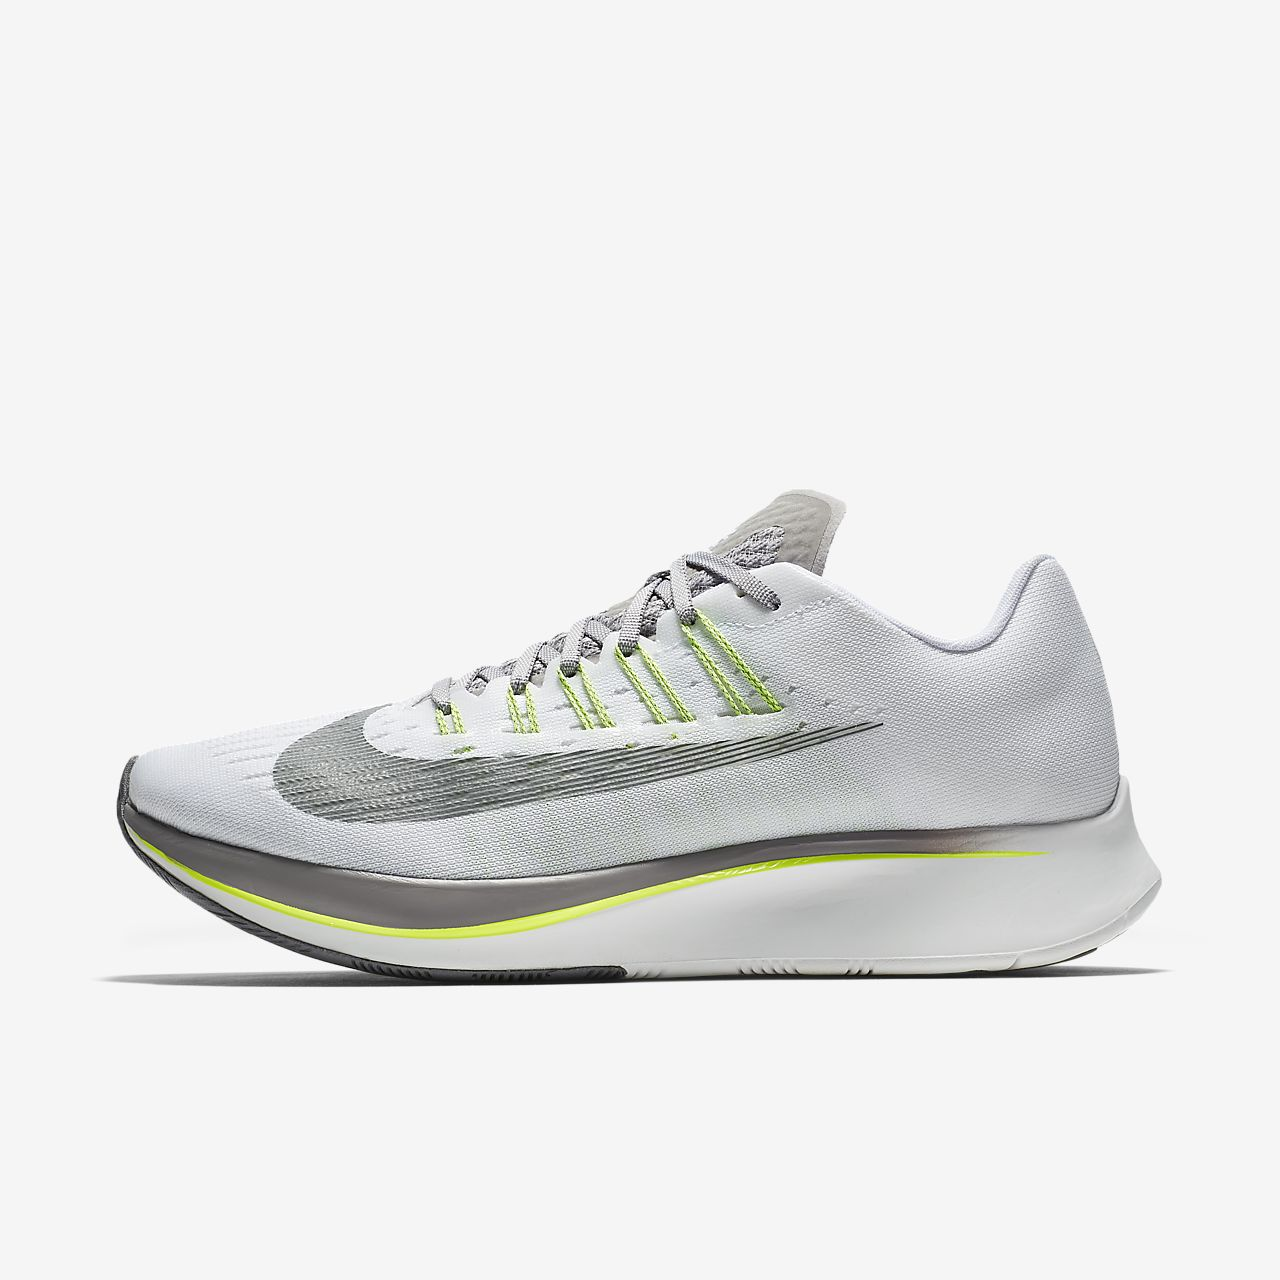 792fb447c5bd Nike Zoom Fly Men s Running Shoe. Nike.com